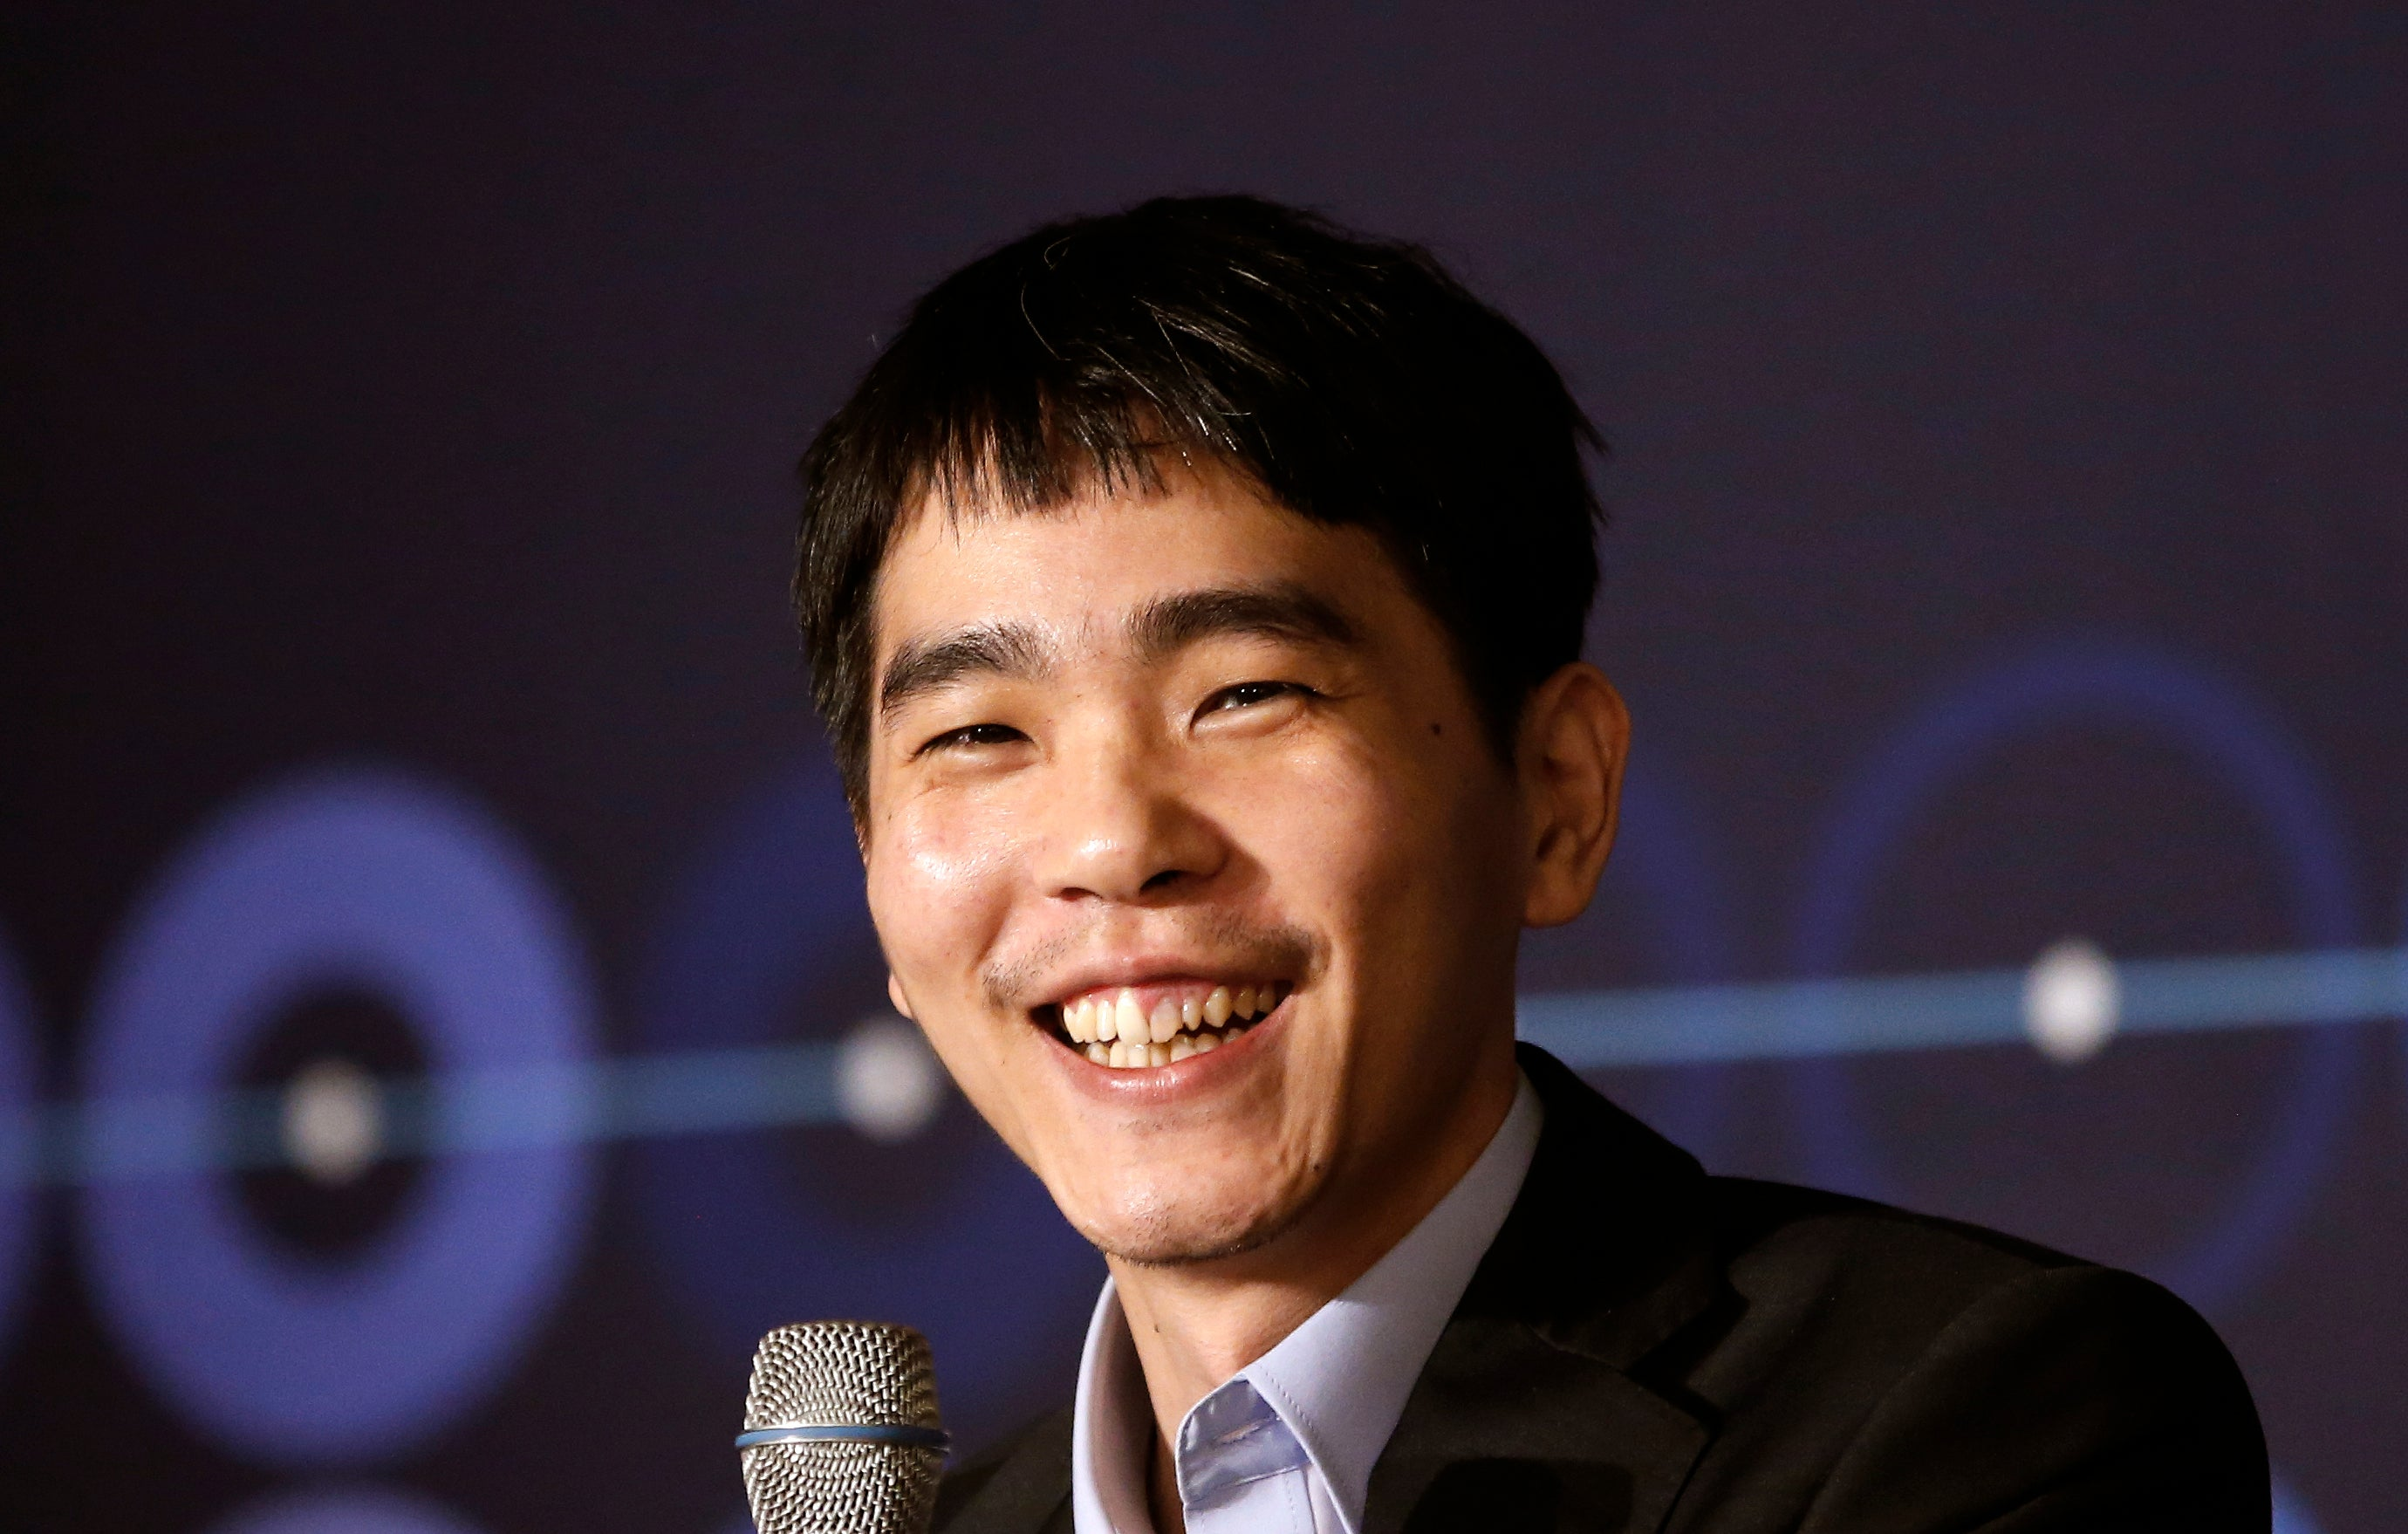 Lee Sedol Has Beaten Google's AlphaGo For The First Time